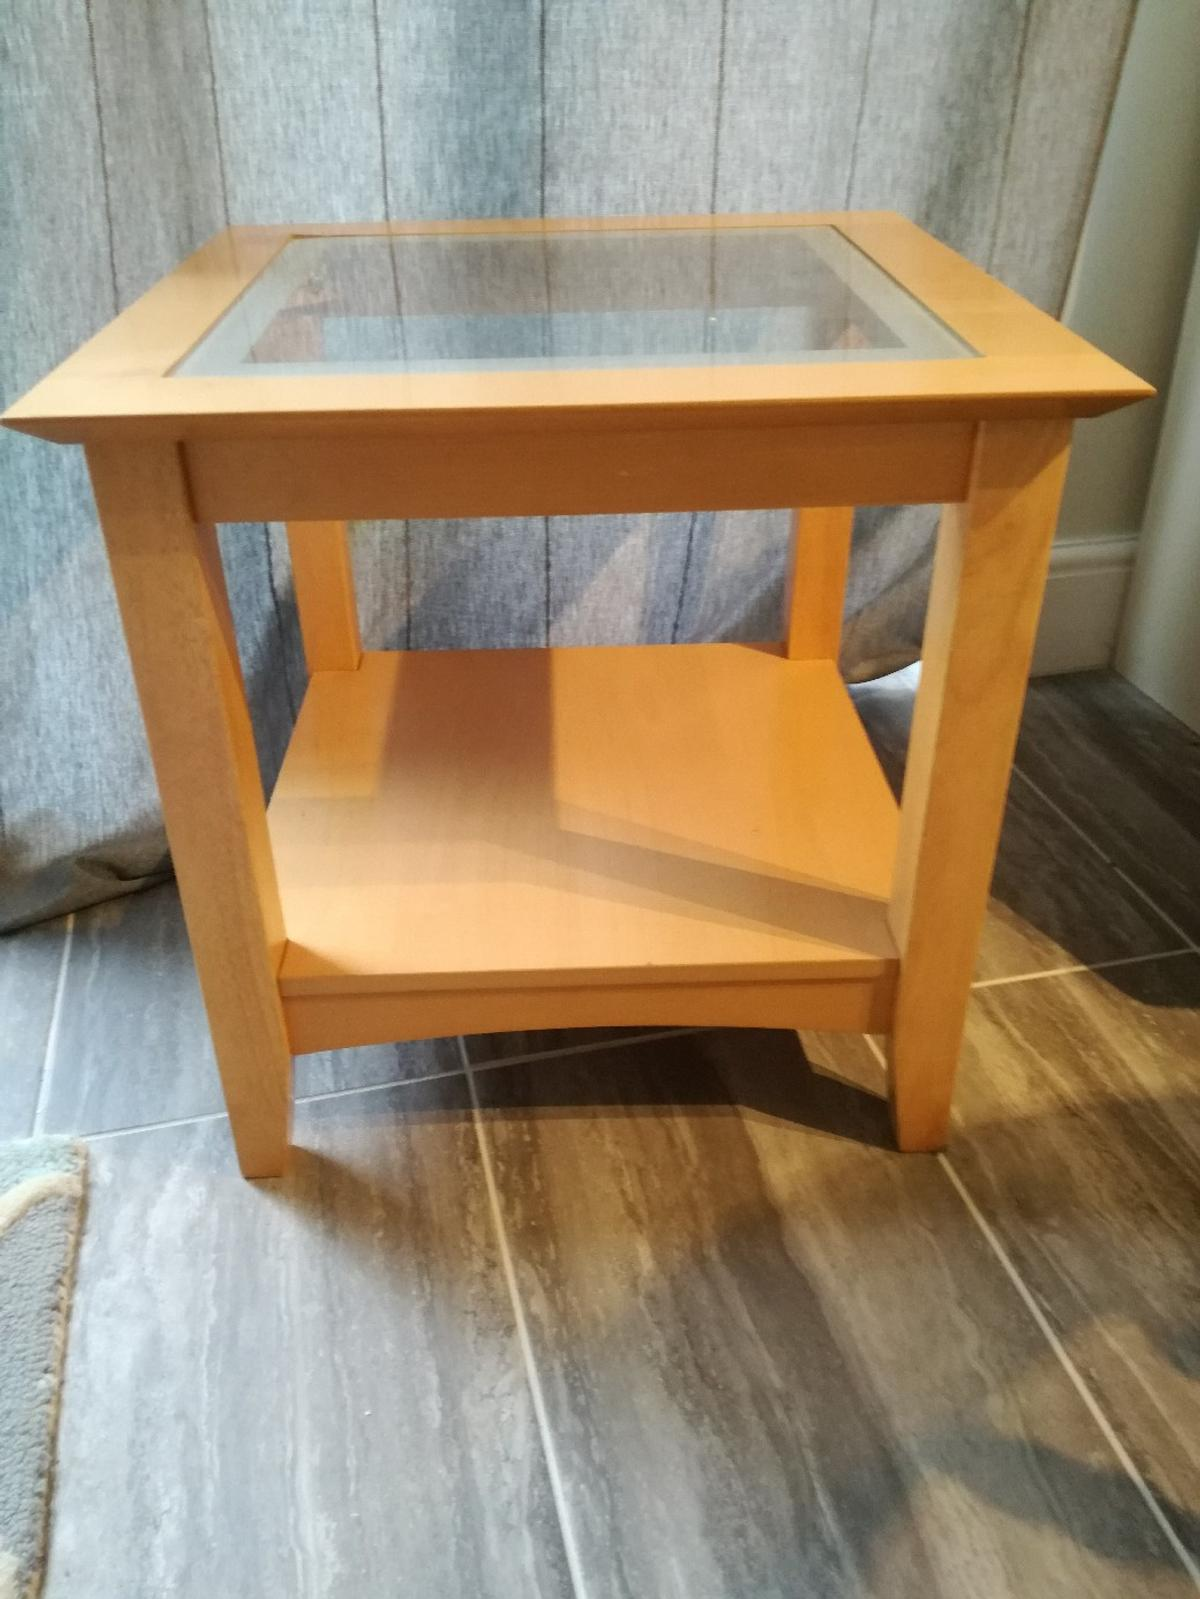 - Teak Effect Side Table With Glass Top. In SG12 Hertfordshire Für 5